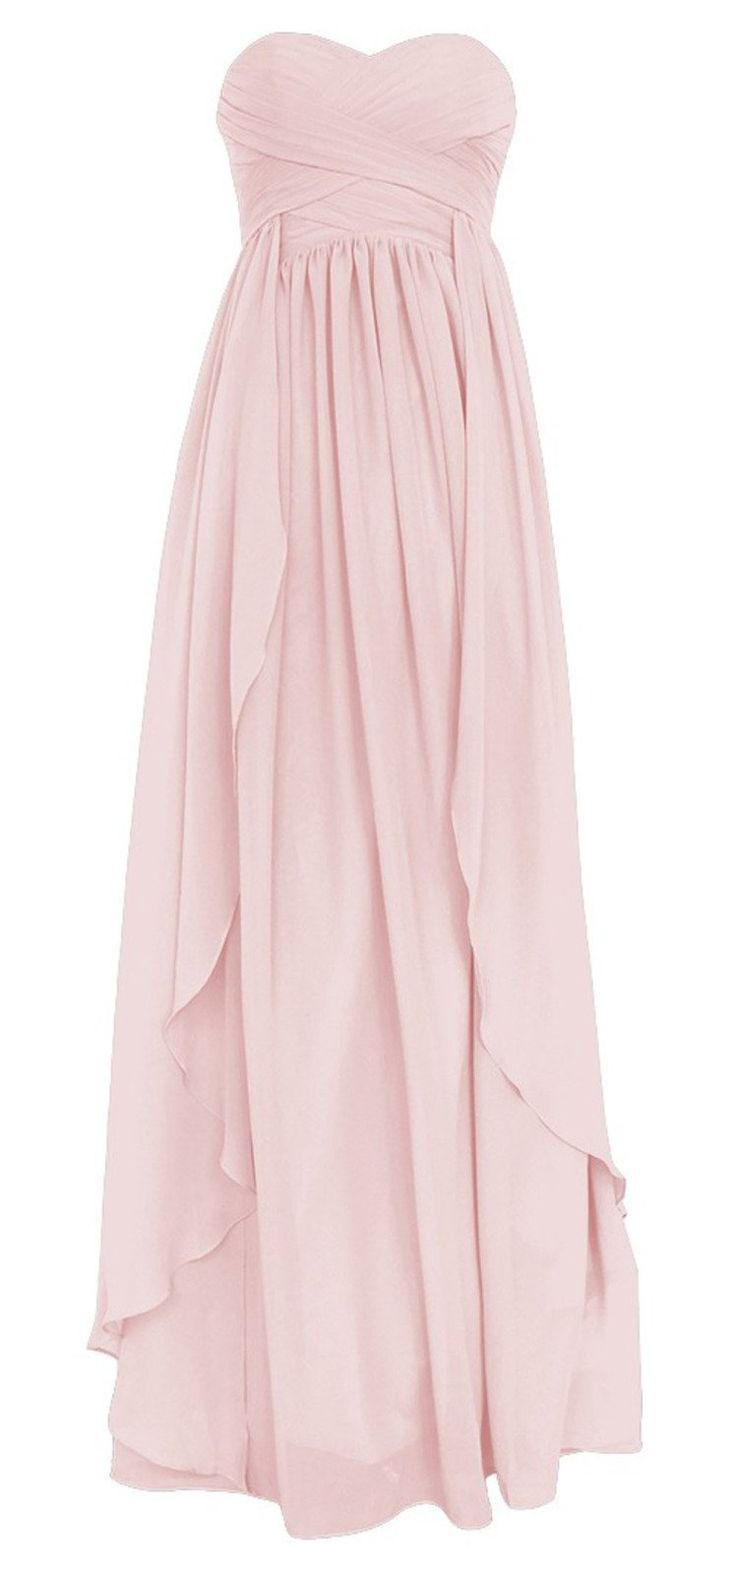 I love this dress. And it would look very interesting against my dark hair and tattoos with some black suede heels